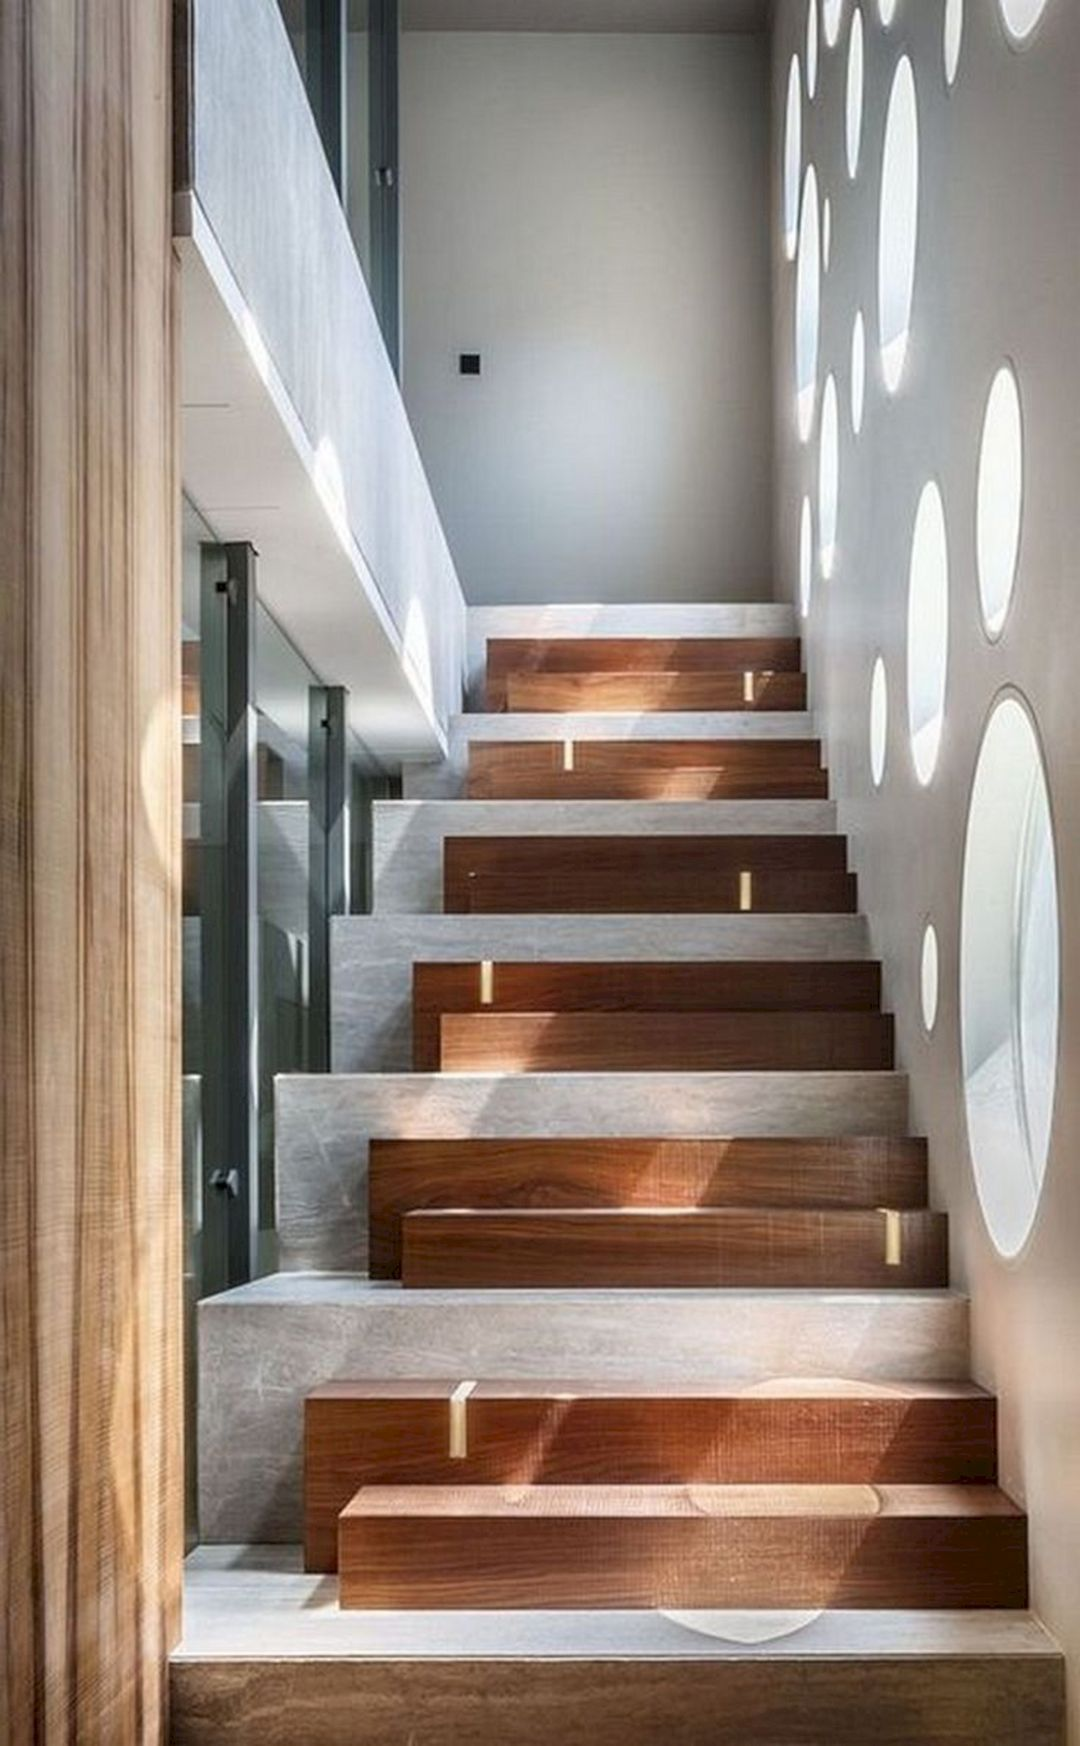 staircase, grey stairs, wooden blocks stair, round glass windows